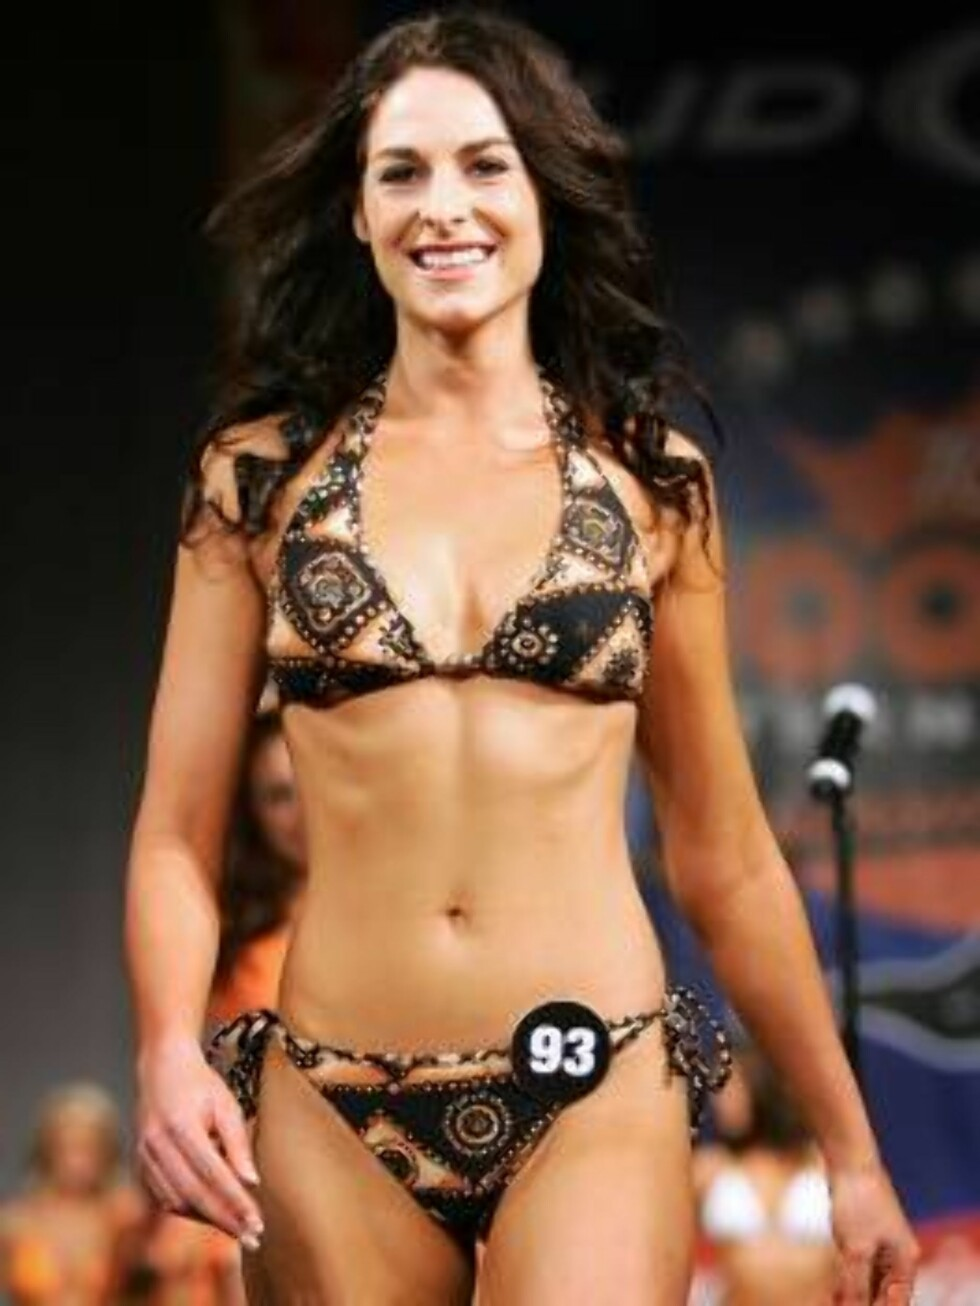 LAS VEGAS - JULY 24:  Michelle Hellyer of Australia competes in a preliminary preview of the 10th annual Hooters International Swimsuit Pageant at the Aladdin Casino & Resort June 24, 2006 in Las Vegas, Nevada. Over 120 Hooters girls who work in one of th Foto: All Over Press